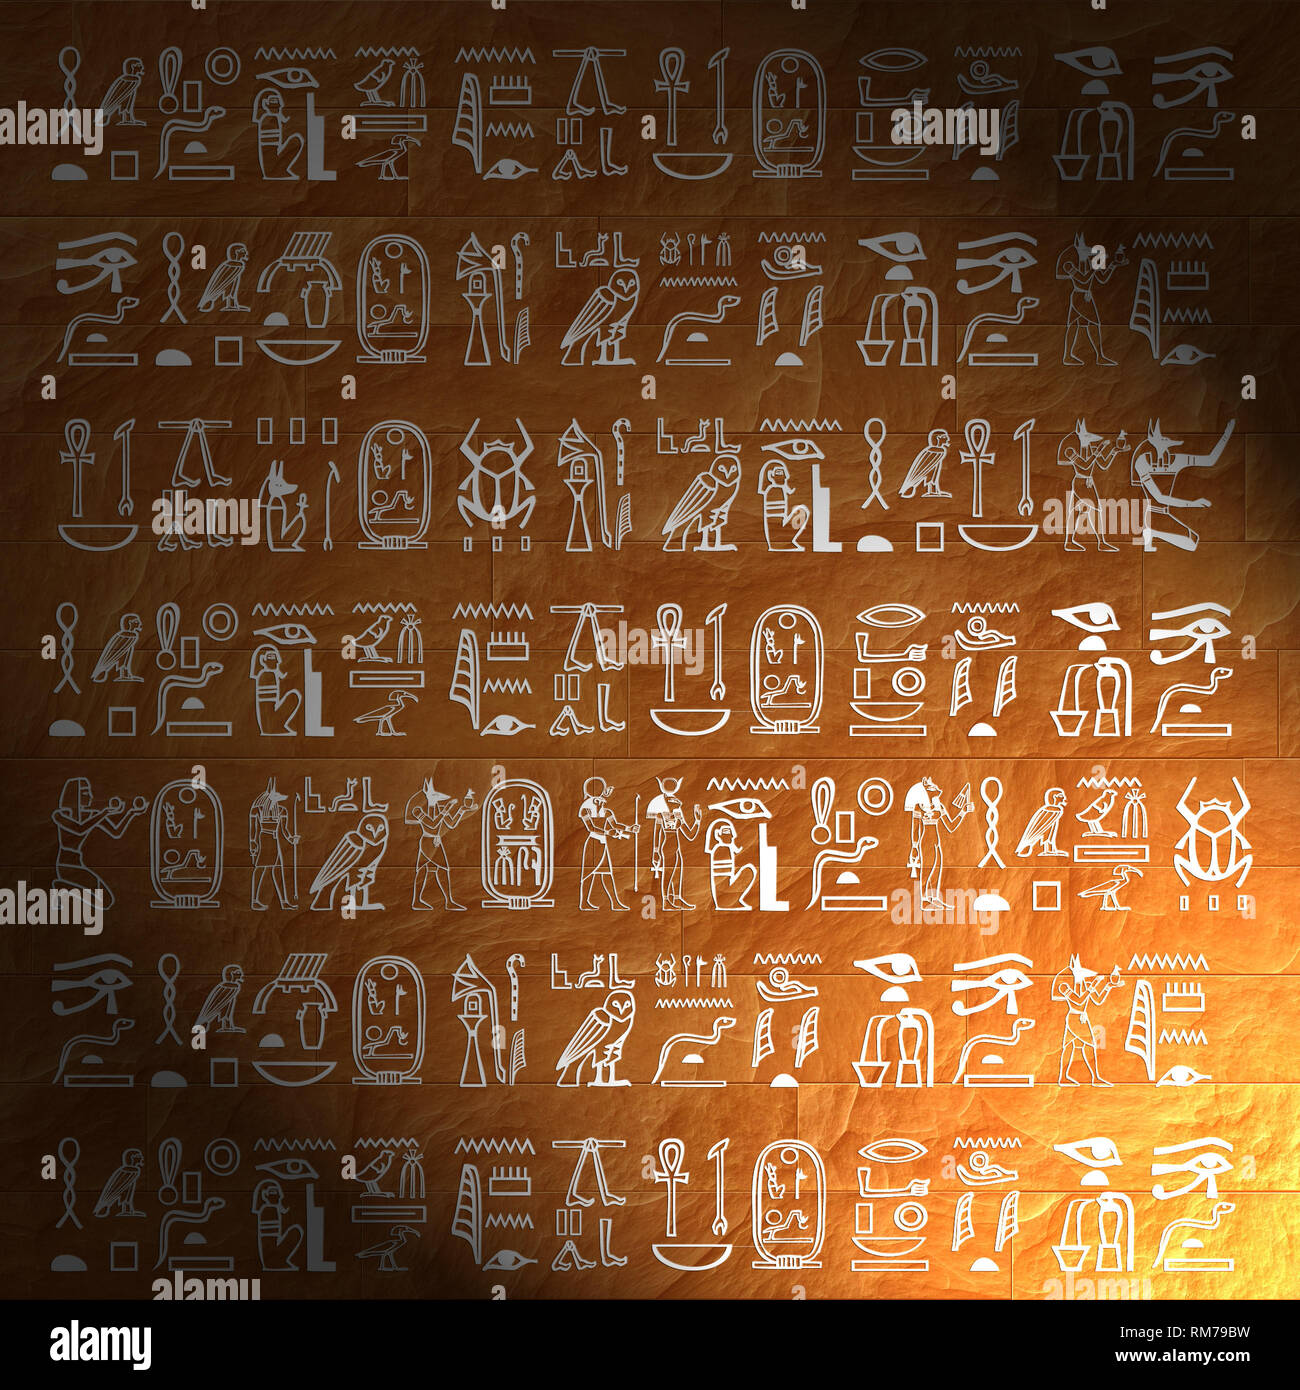 wall with ancient Egypt hieroglyphs - Stock Image